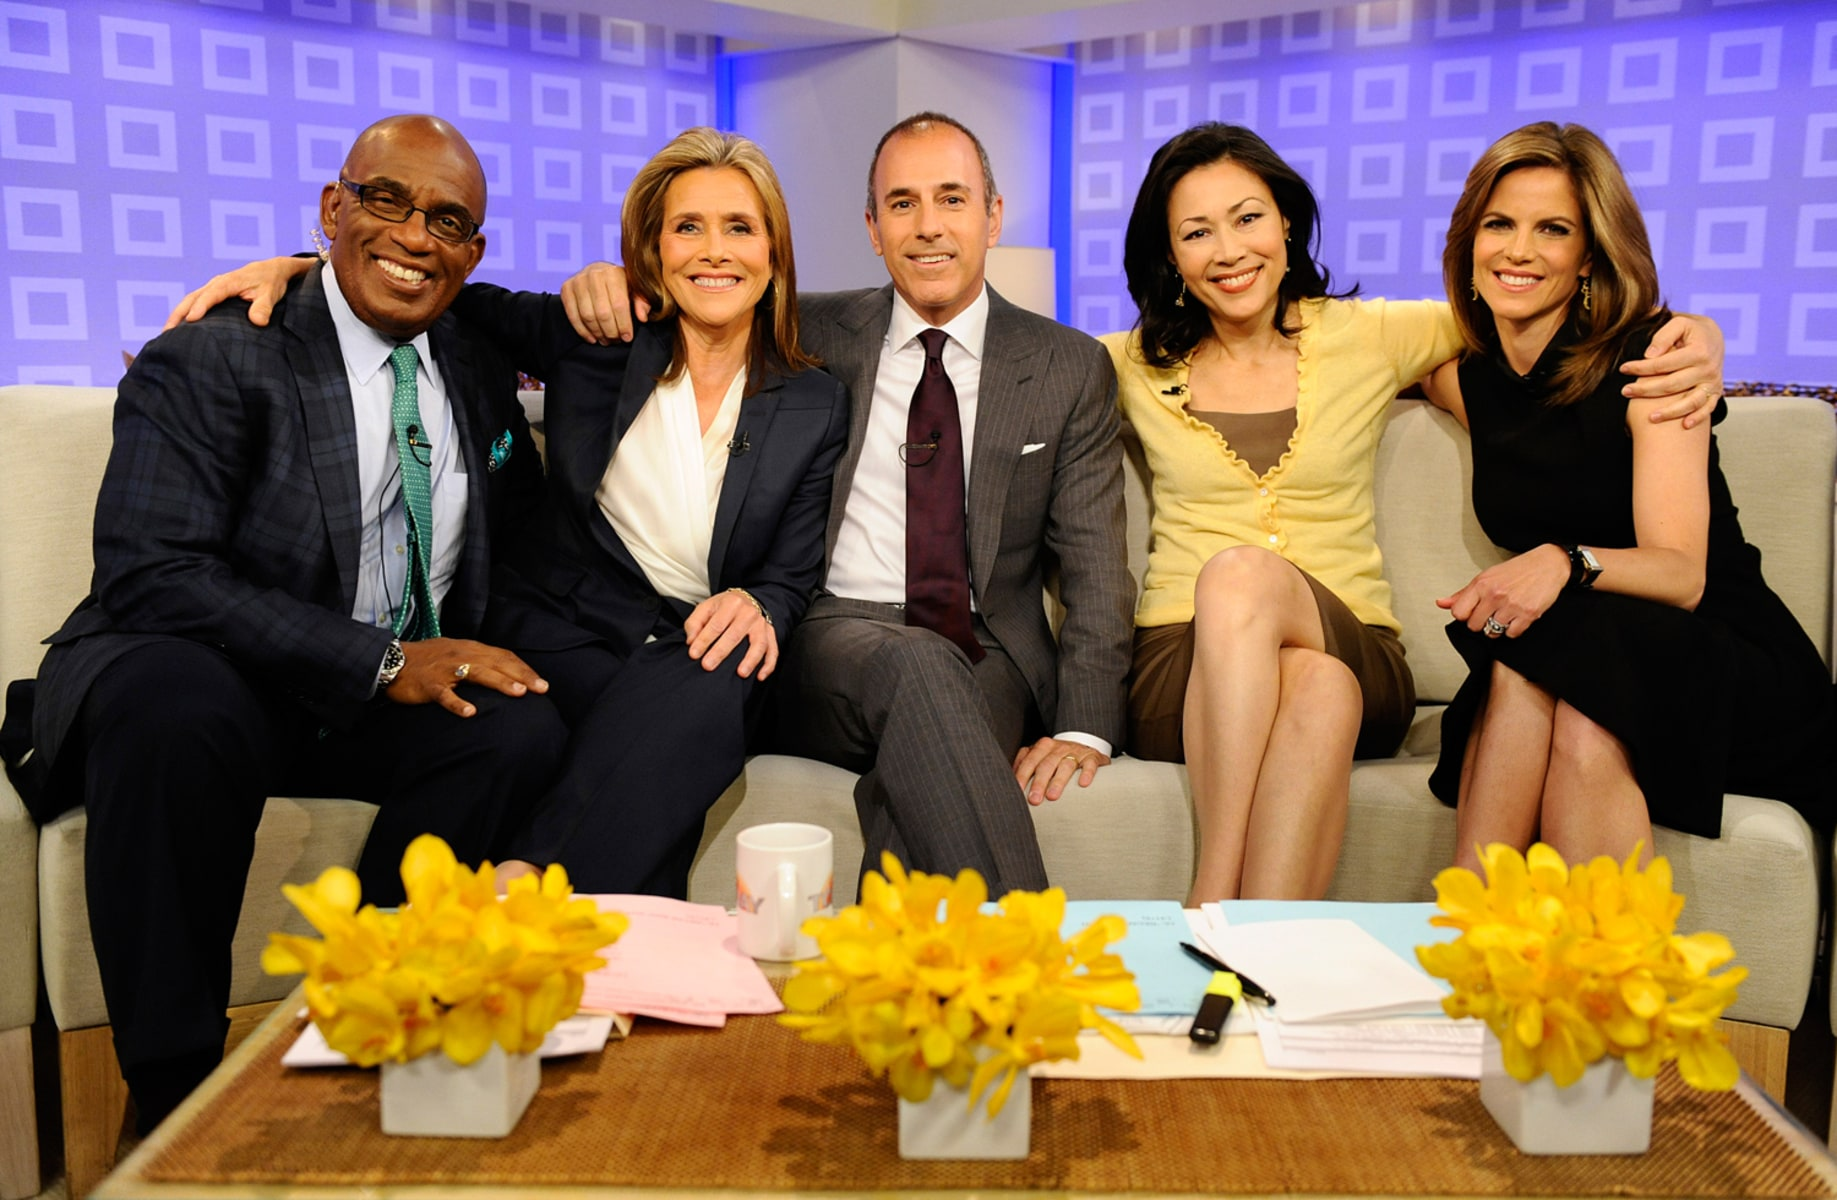 Natalie morales today west coast anchor host of 39 access - Matt today show ...